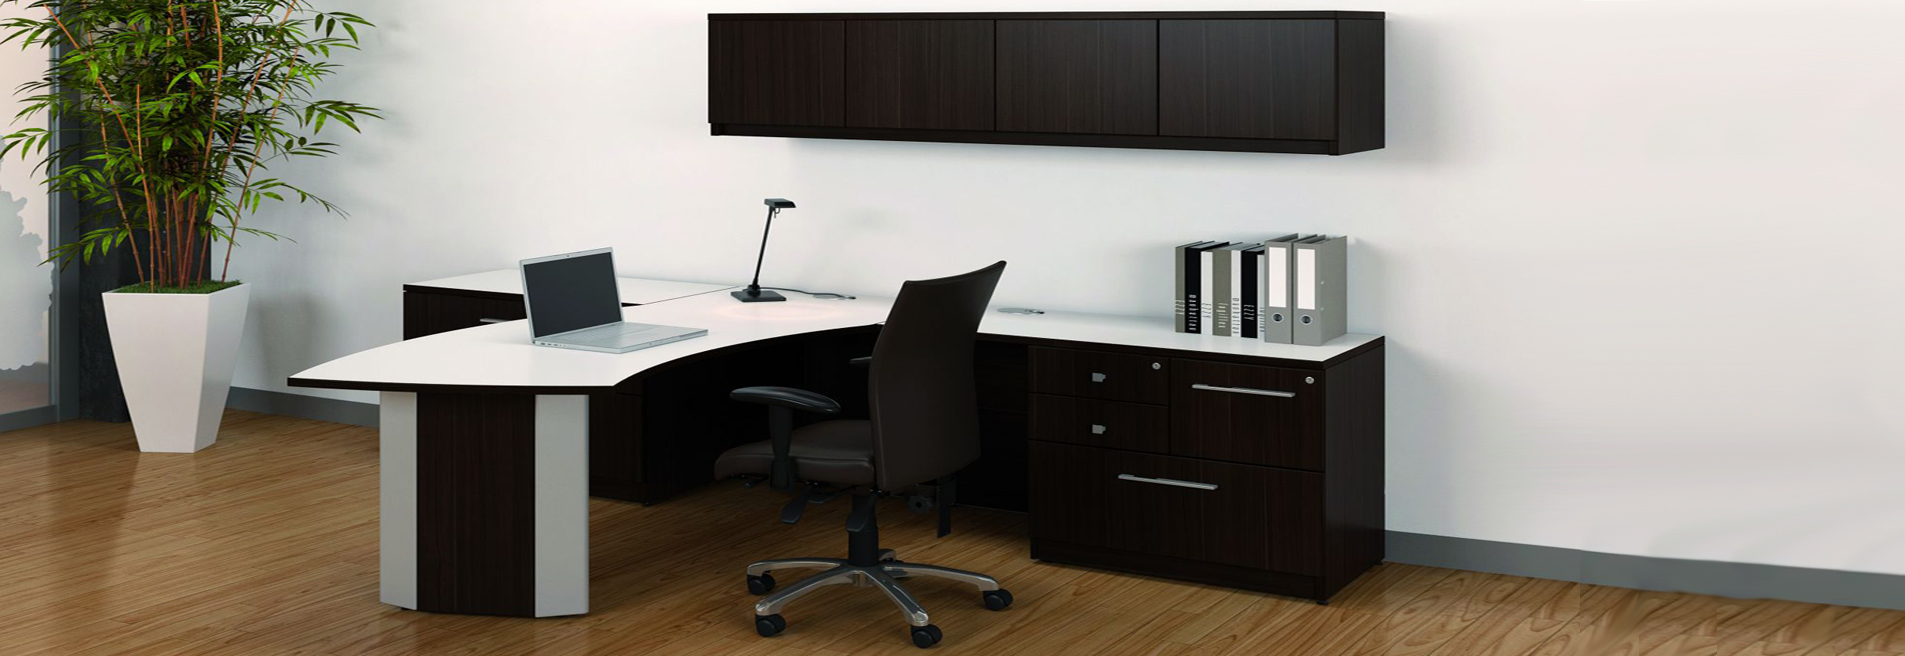 Office Desk Pictures Black Happiness Is Warm Office Desk Vhive Desk Furniture By Cubiclescom